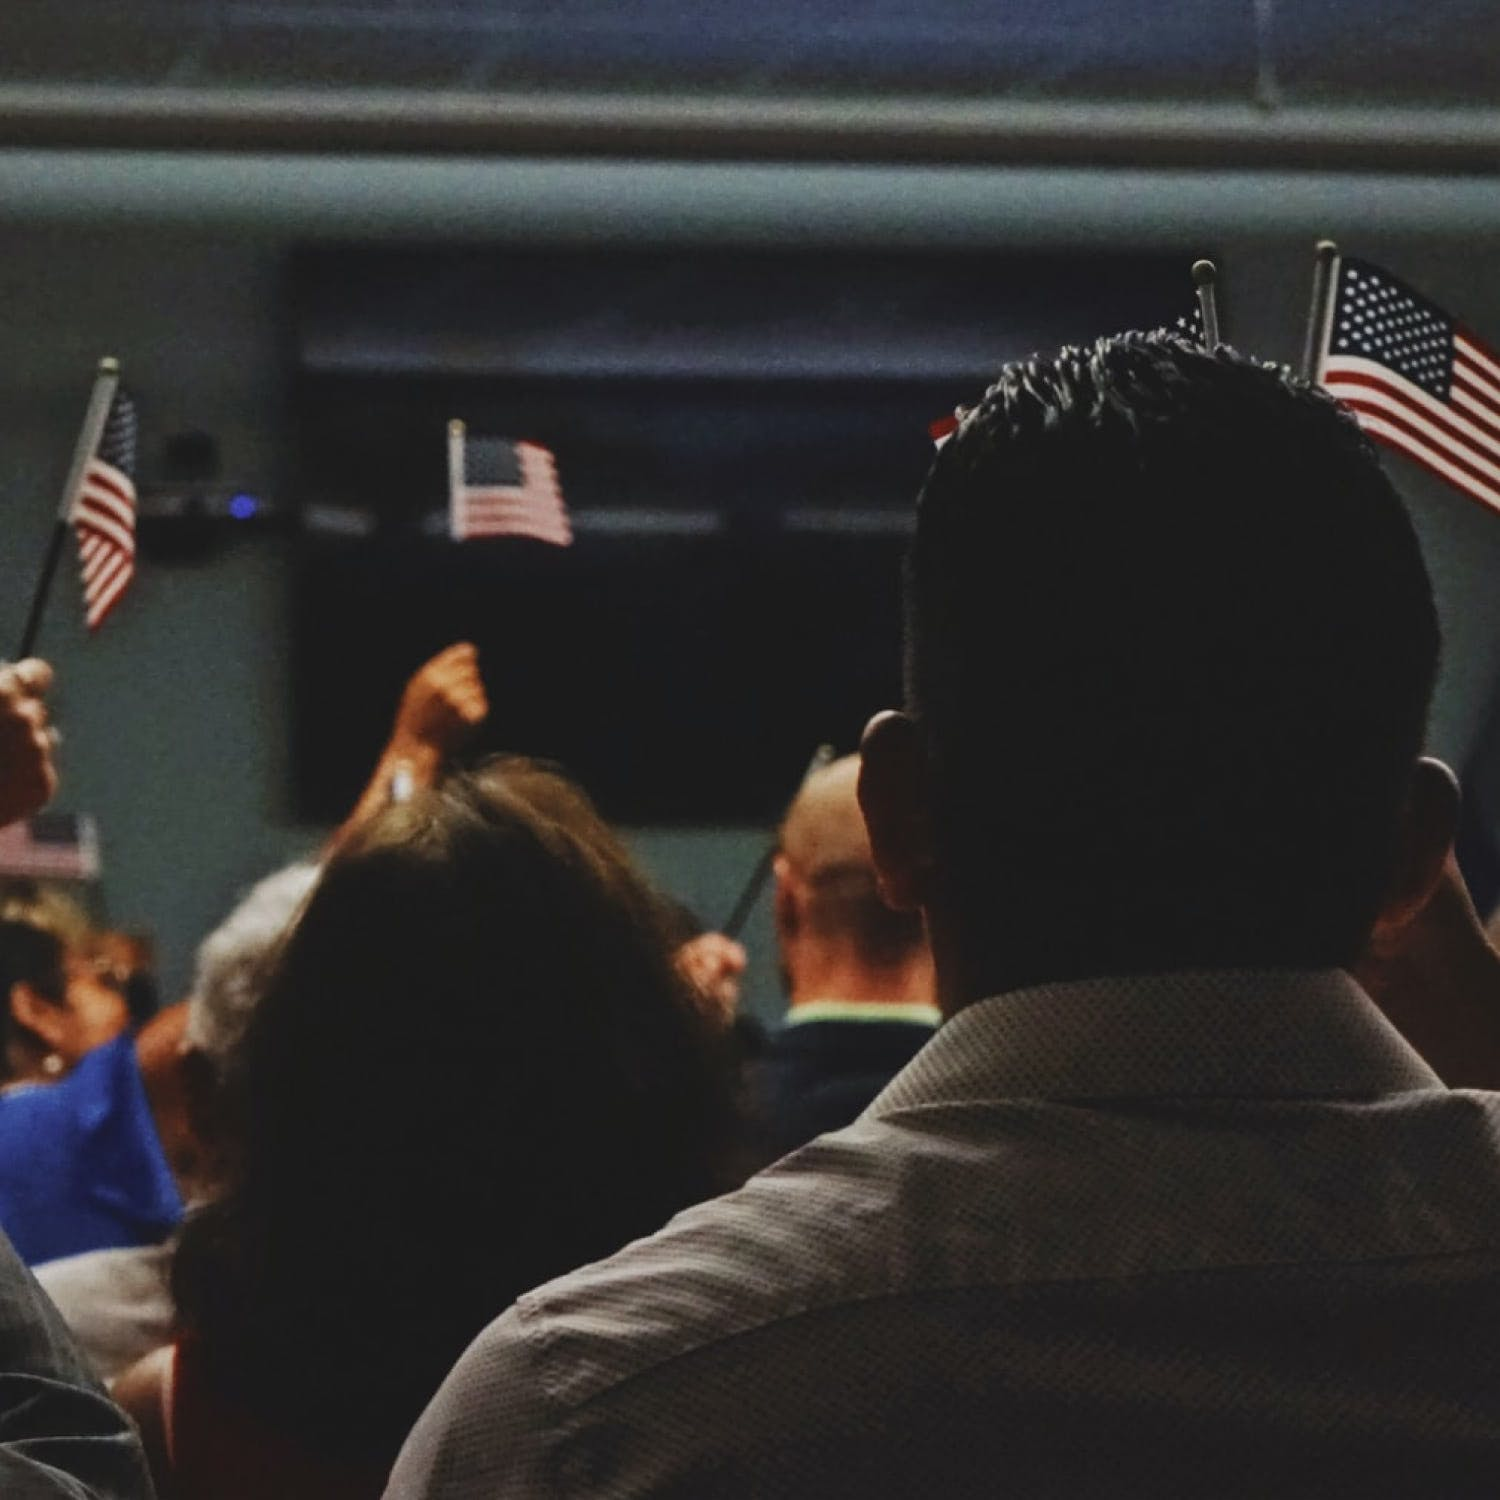 Undocumented and White: The U.S. Immigration System Is Both Cruel and Colorblind